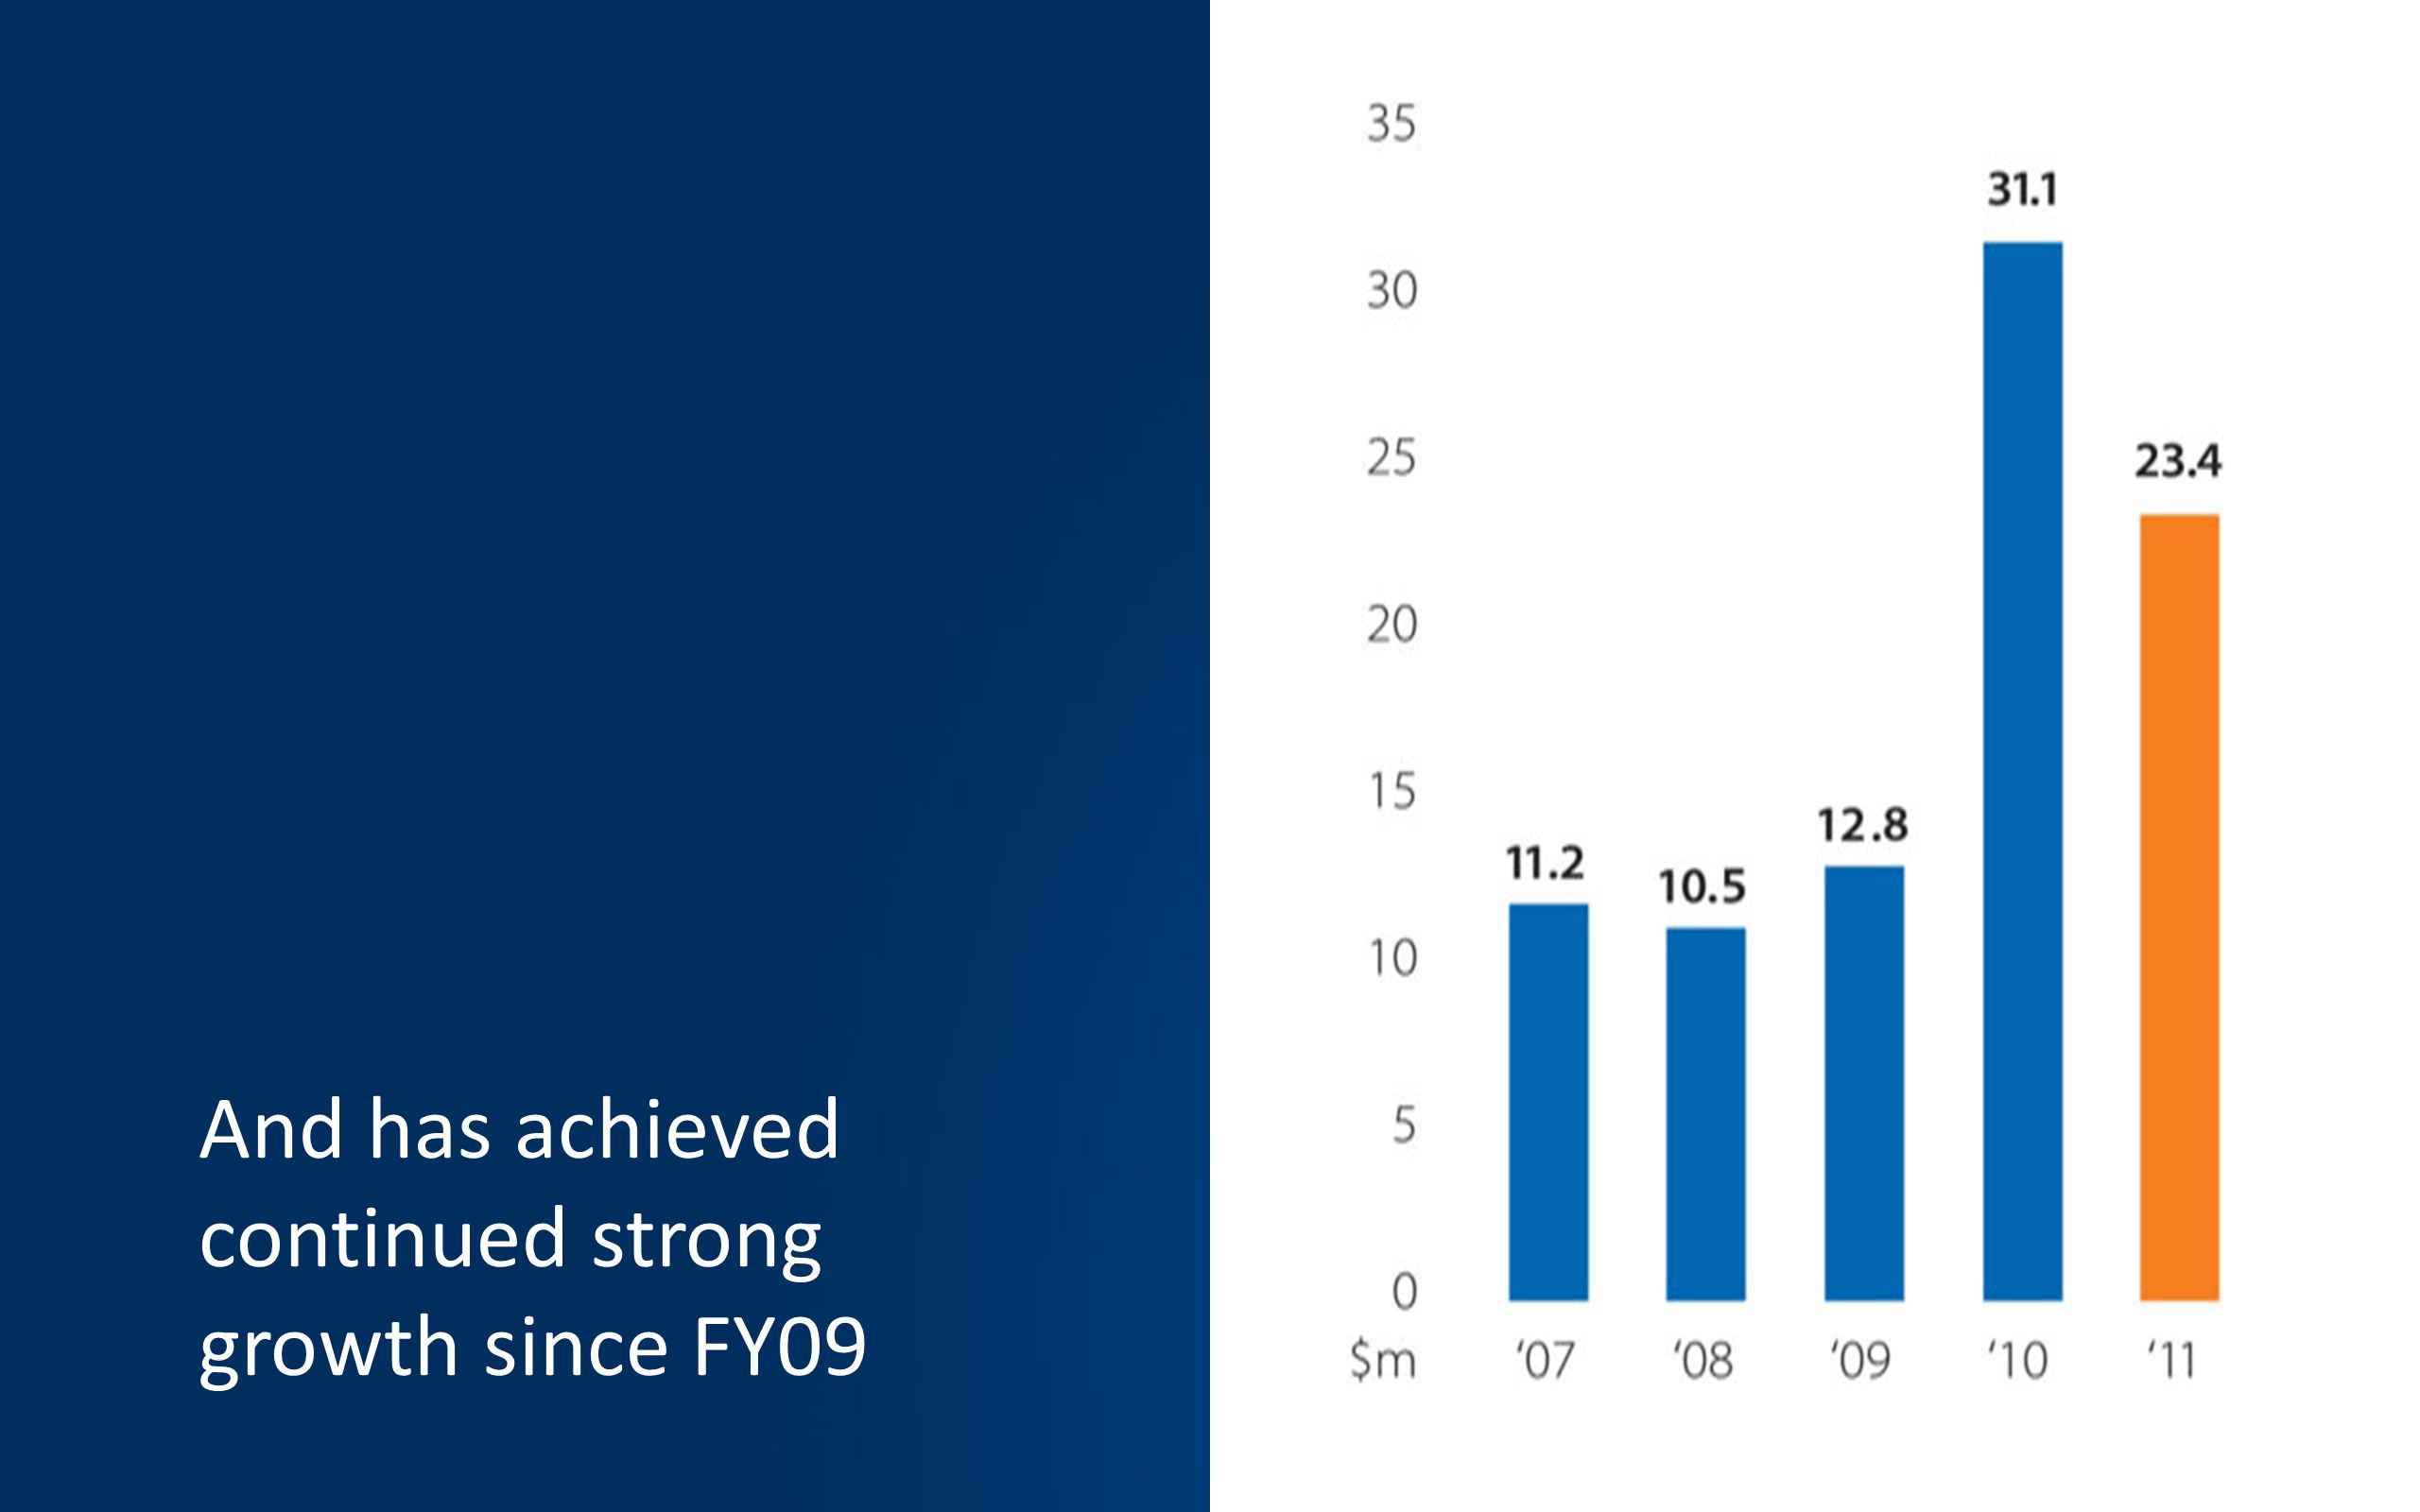 And has achieved continued strong growth since FY09